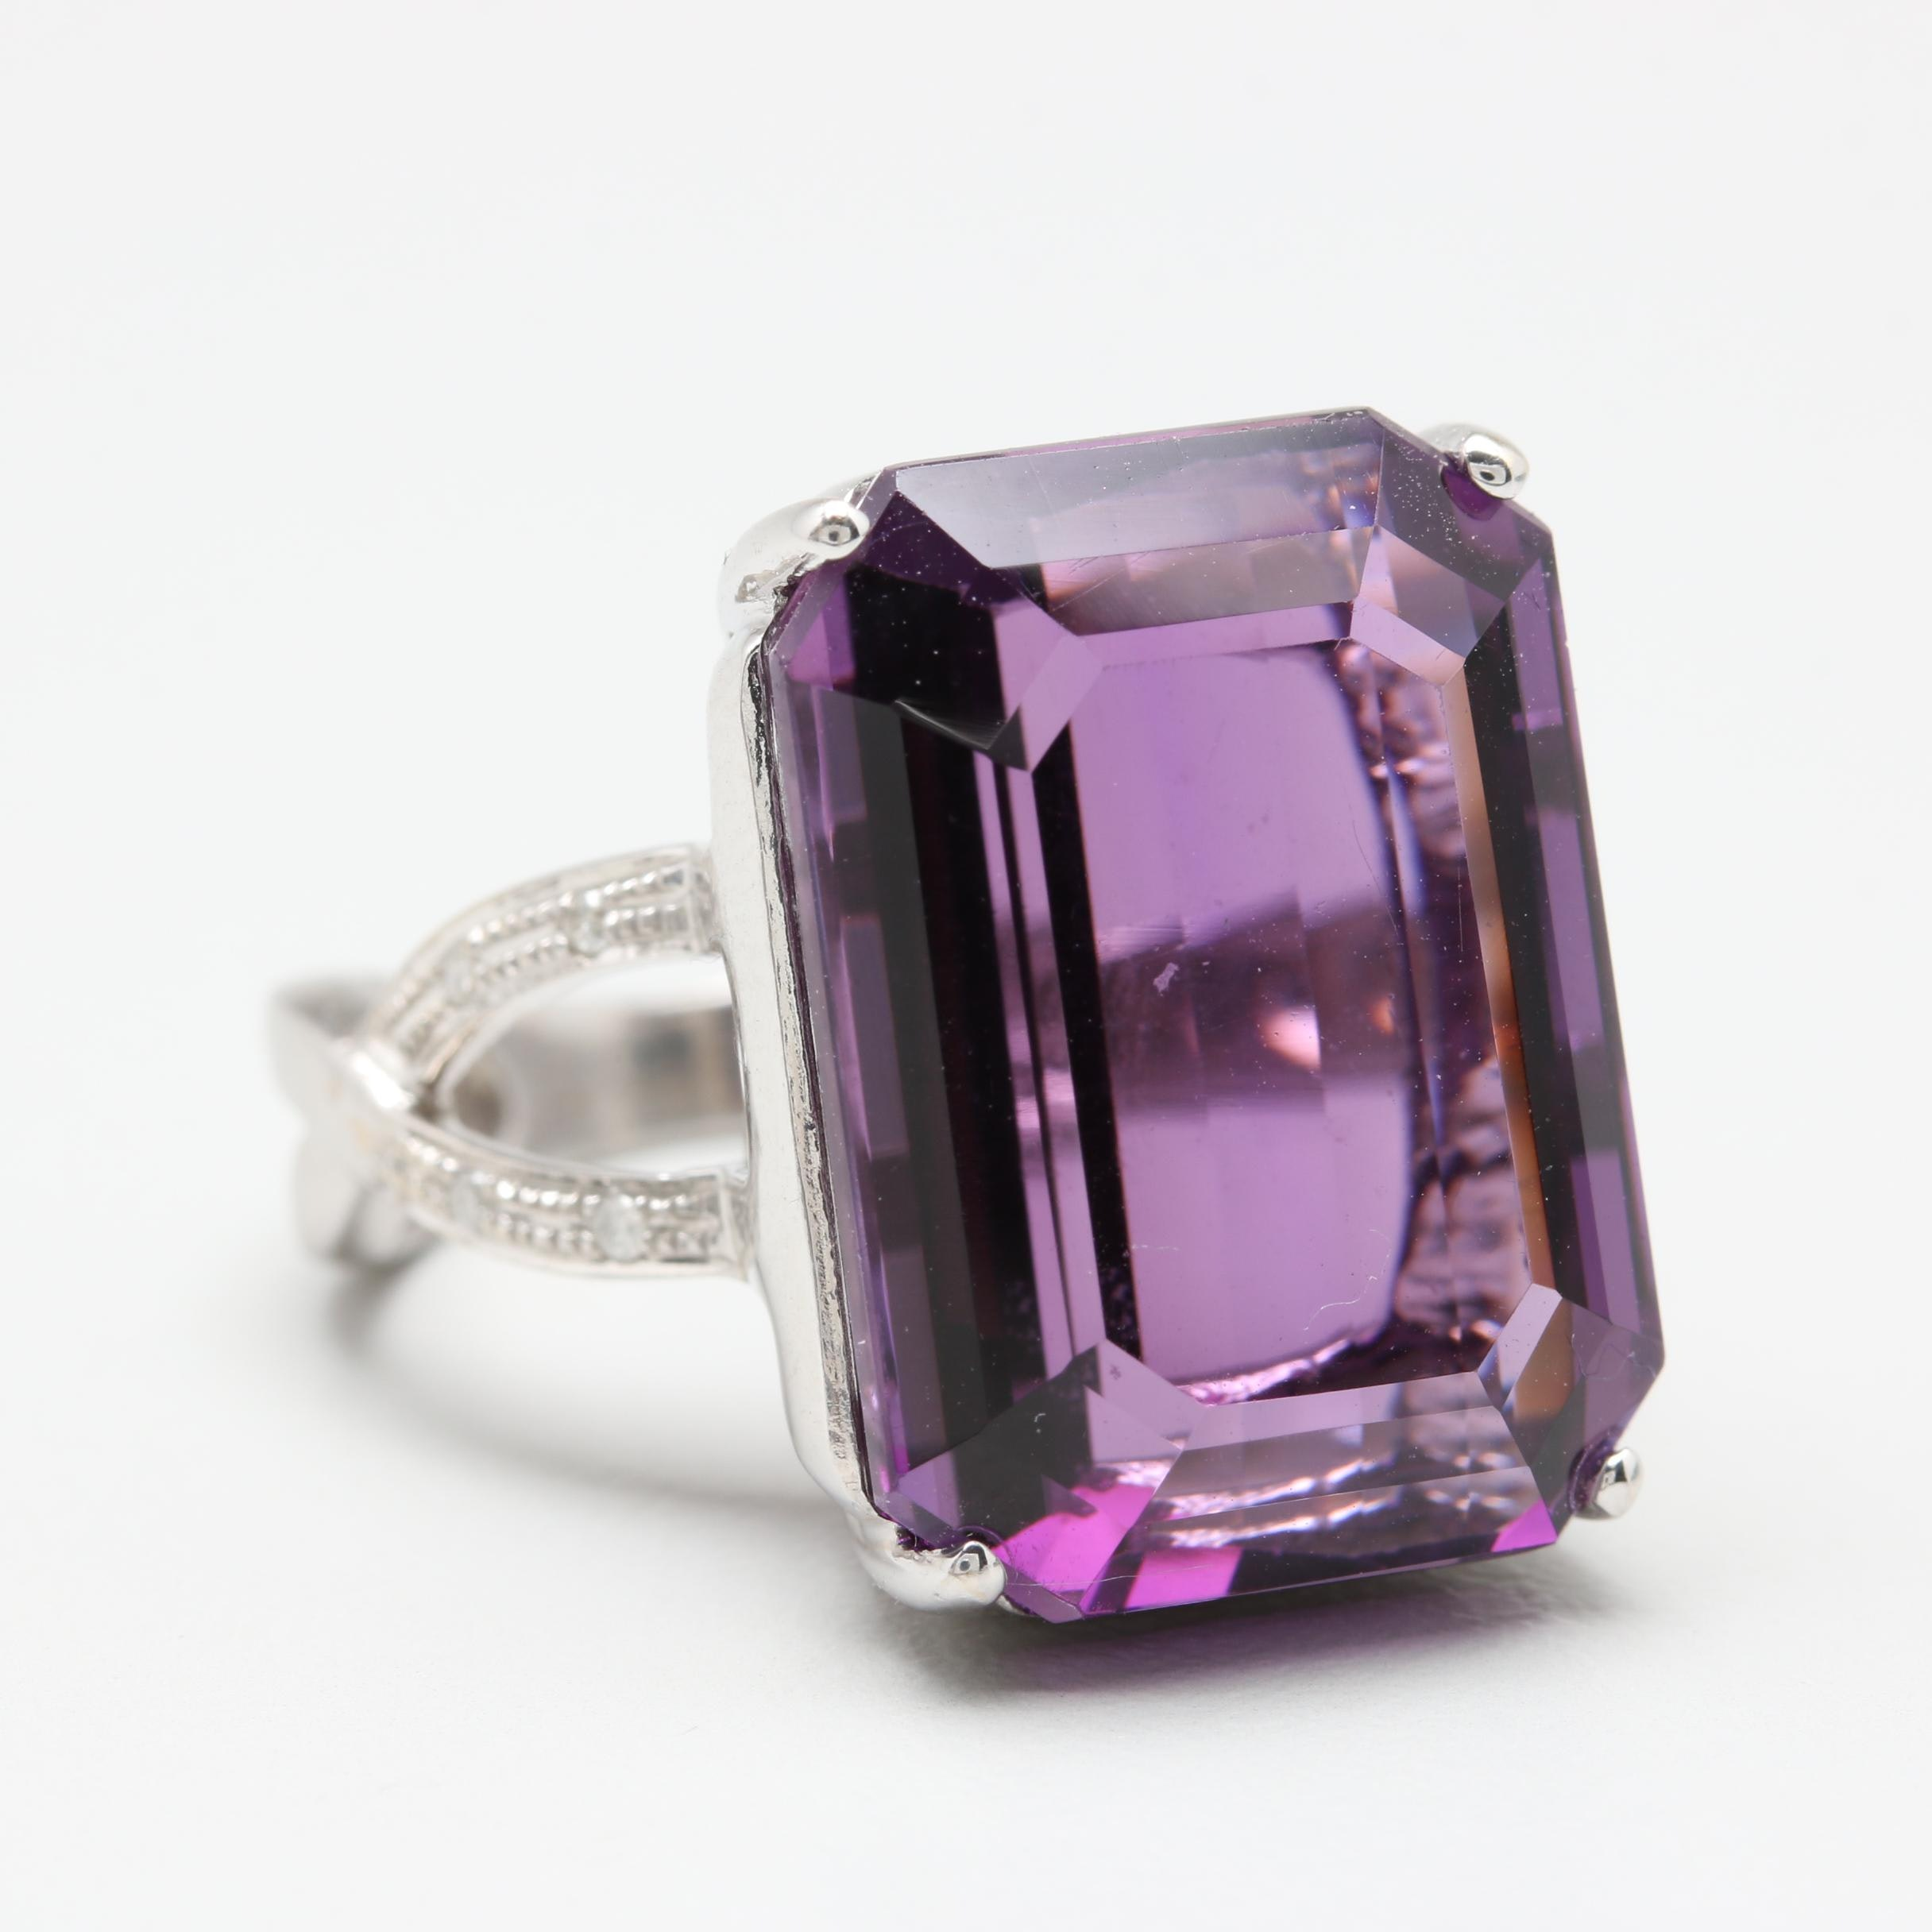 14K White Gold 20.38 CT Amethyst and Diamond Cocktail Ring